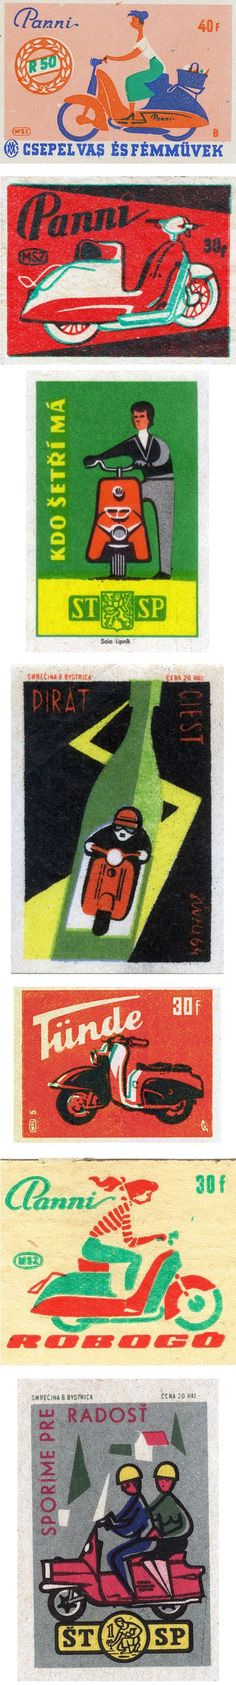 Vintage scooter matchbook covers